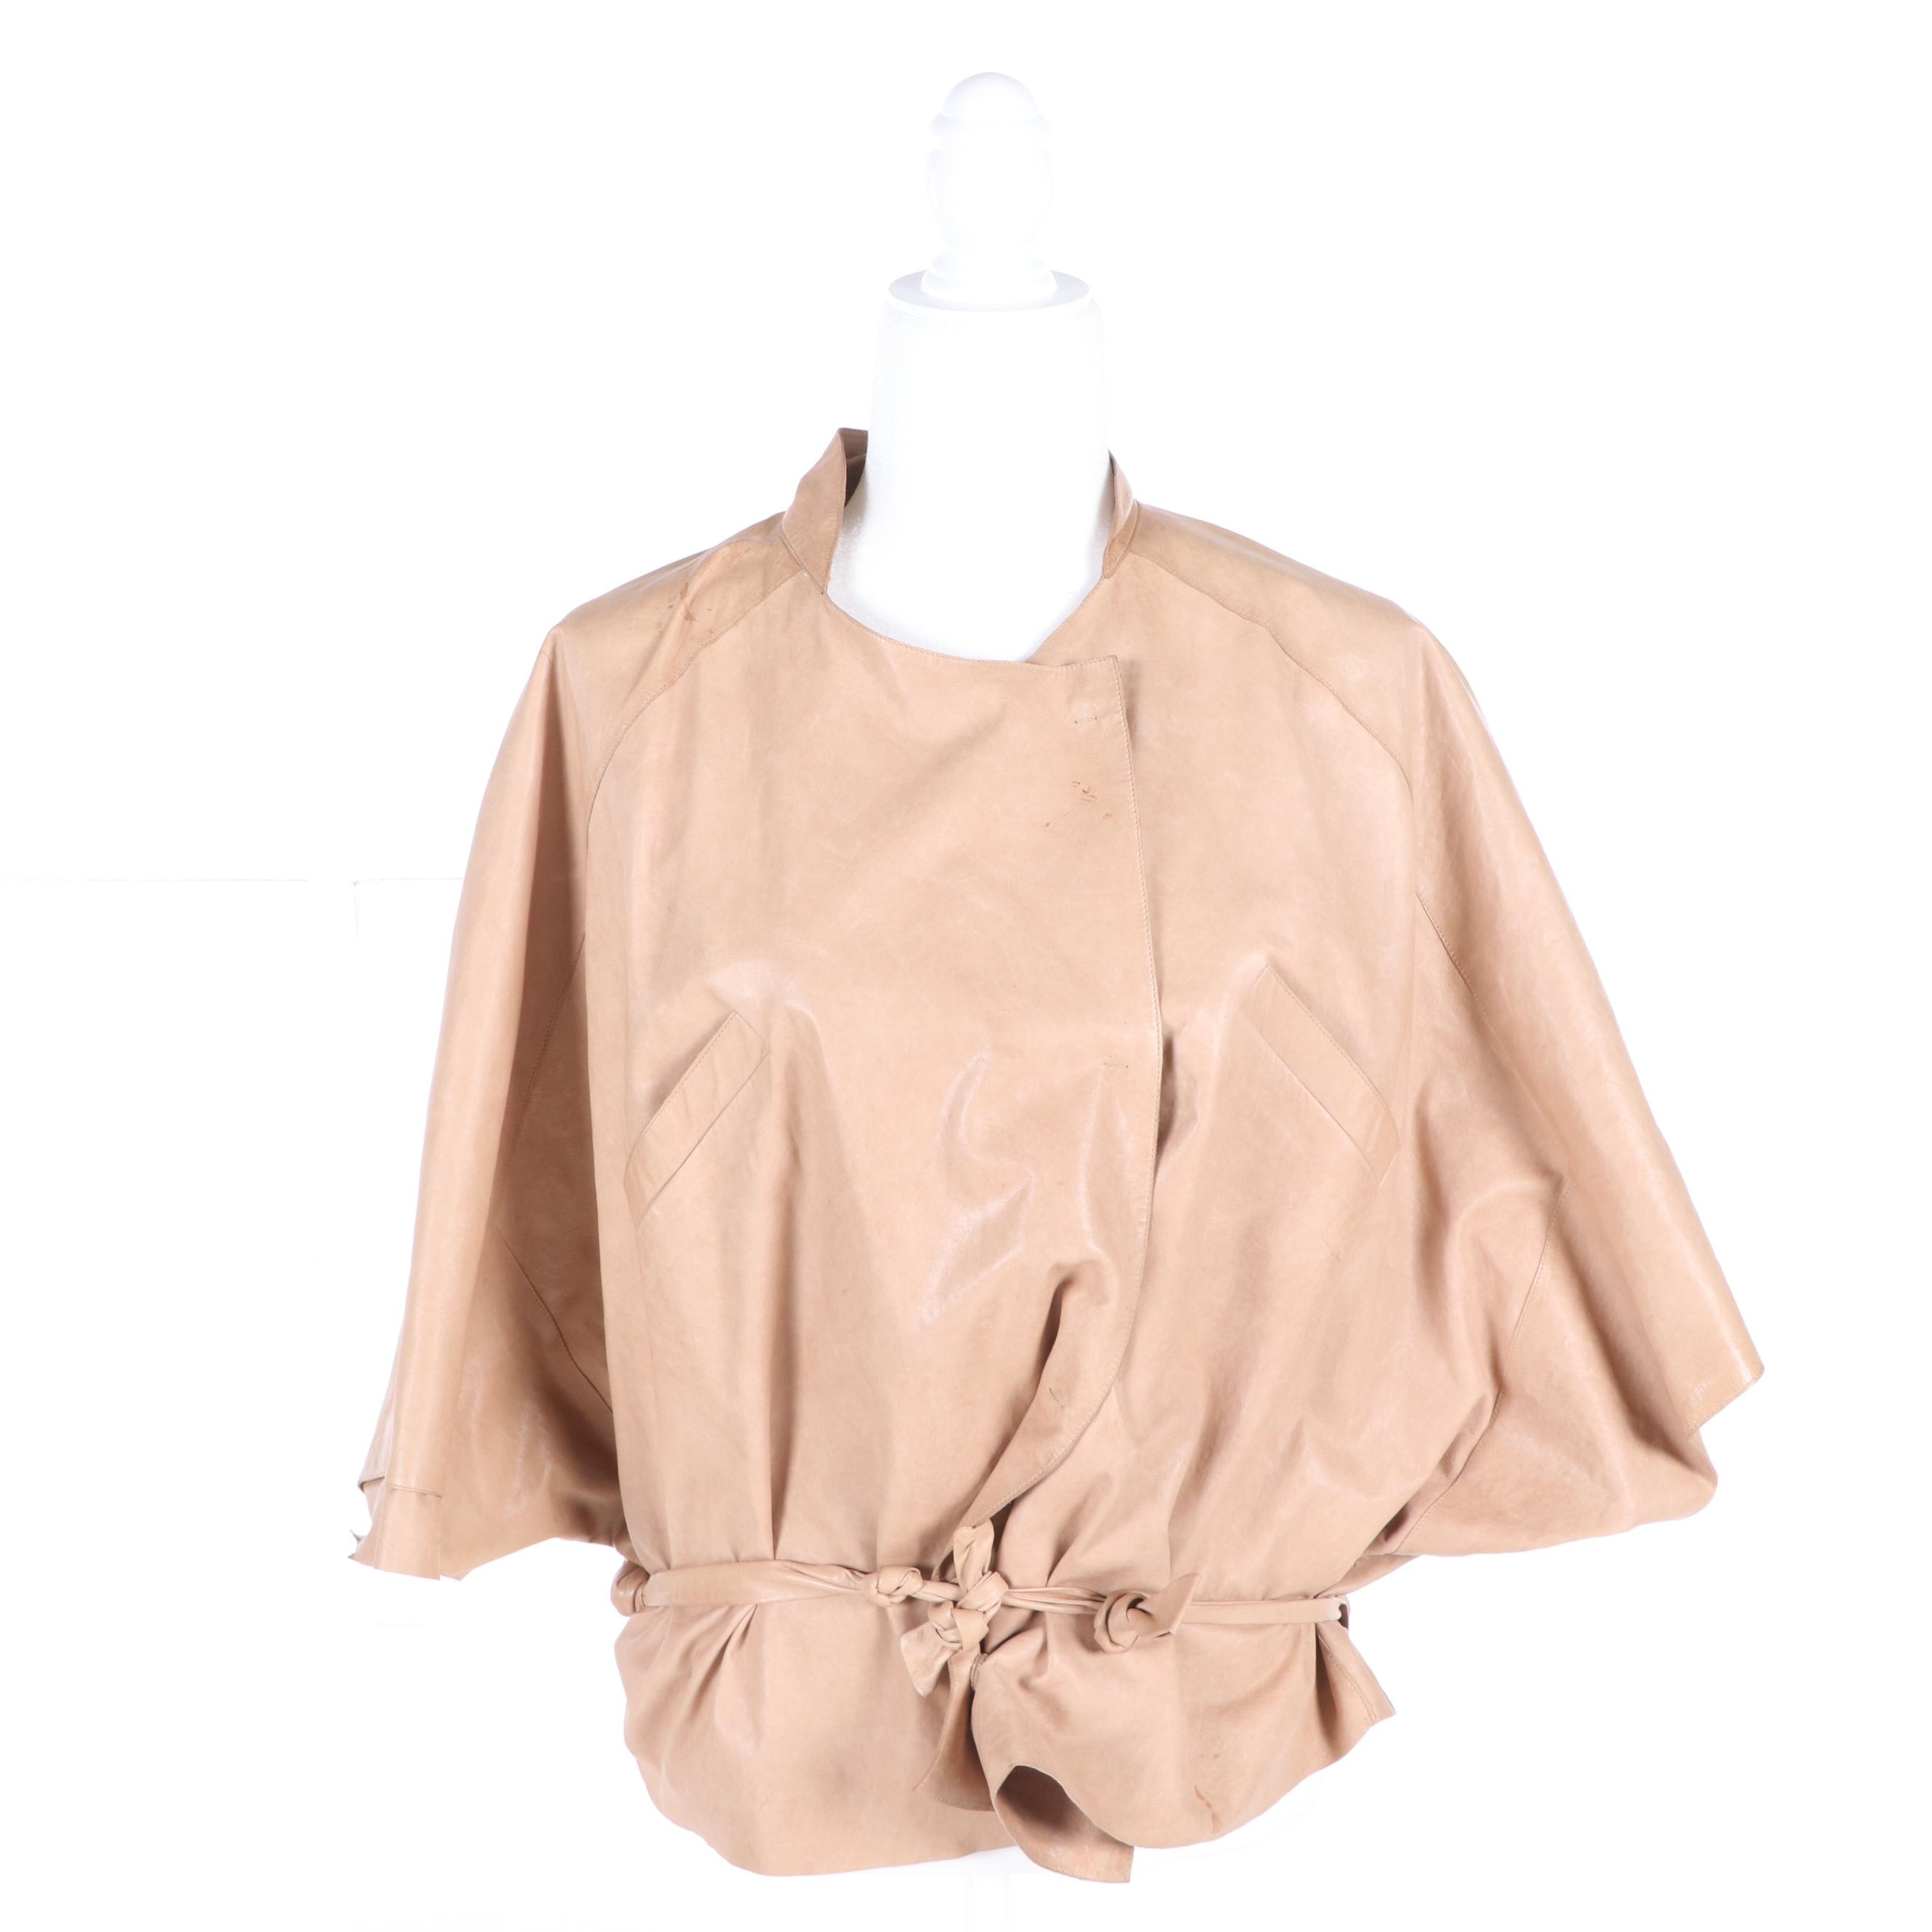 Women's Marni Blush Lambskin Leather Dolman Sleeve Jacket with Slash Pockets